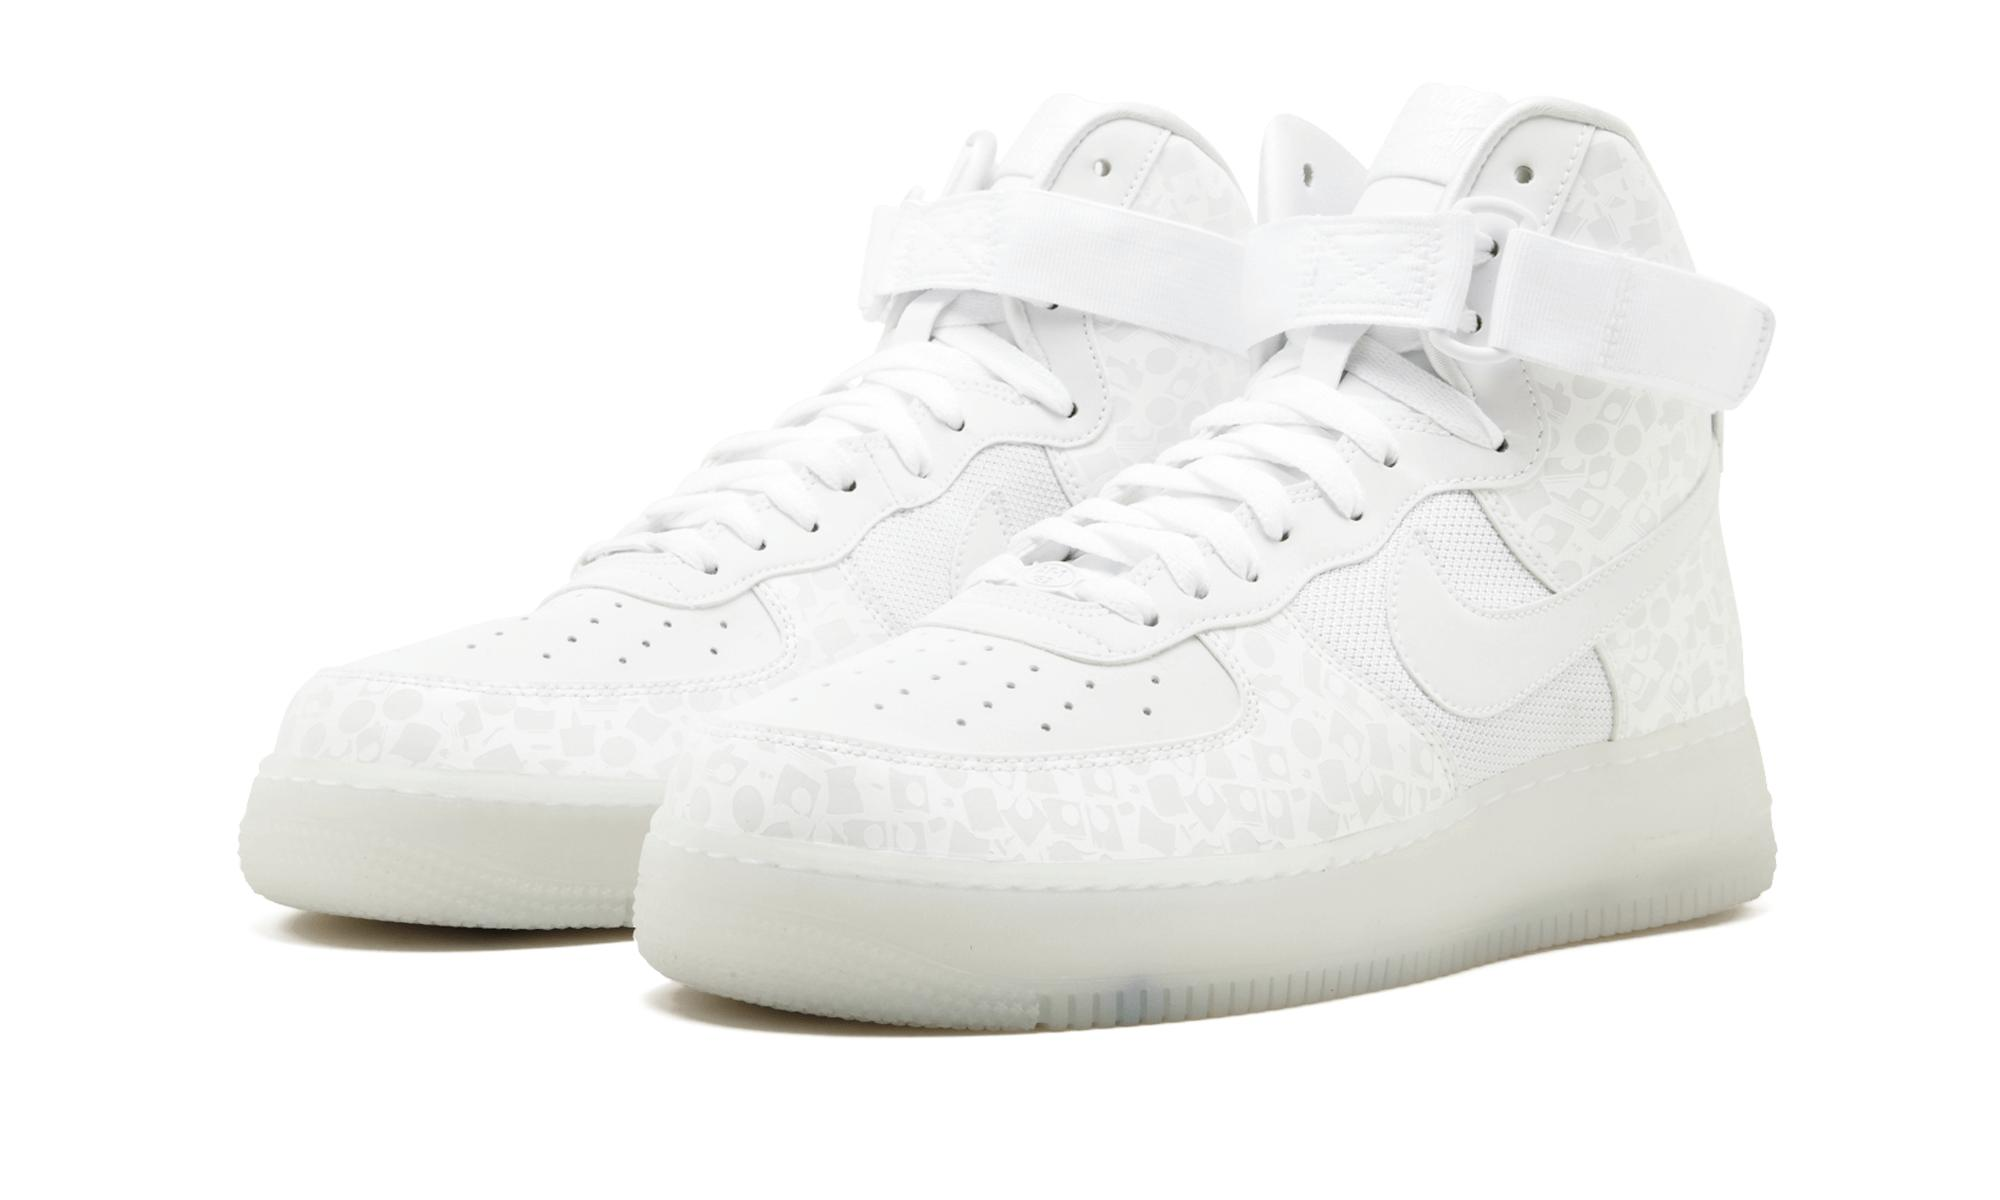 premium selection d77b6 3b0de Men's White Air Force 1 High